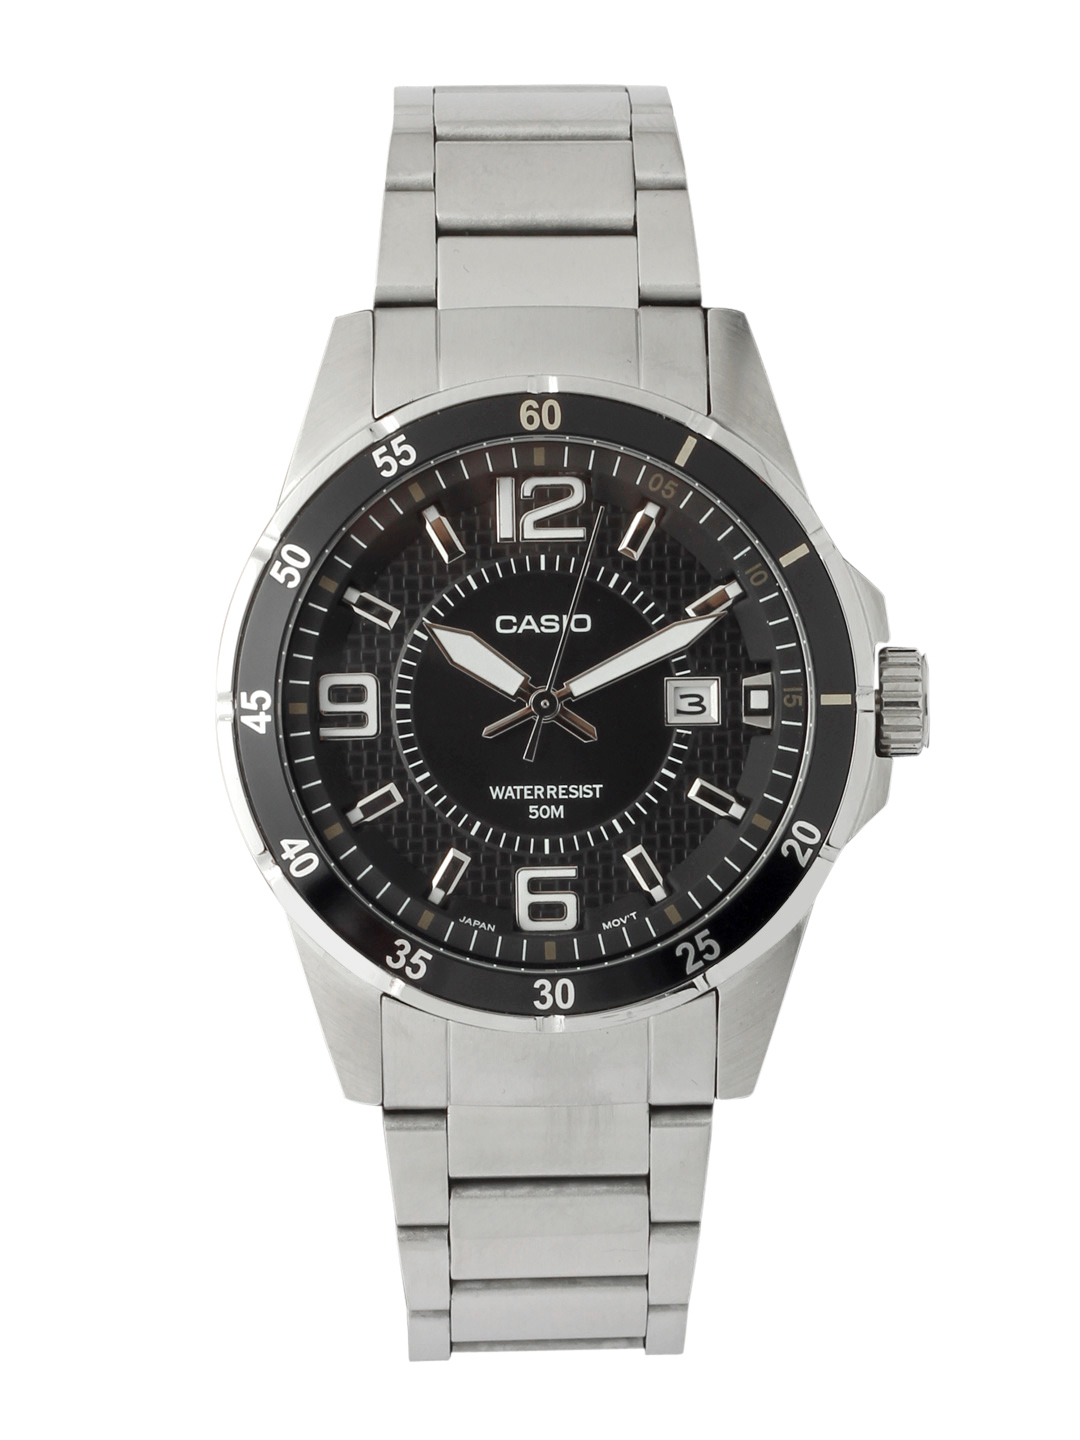 Casio Men Black Dial Watch